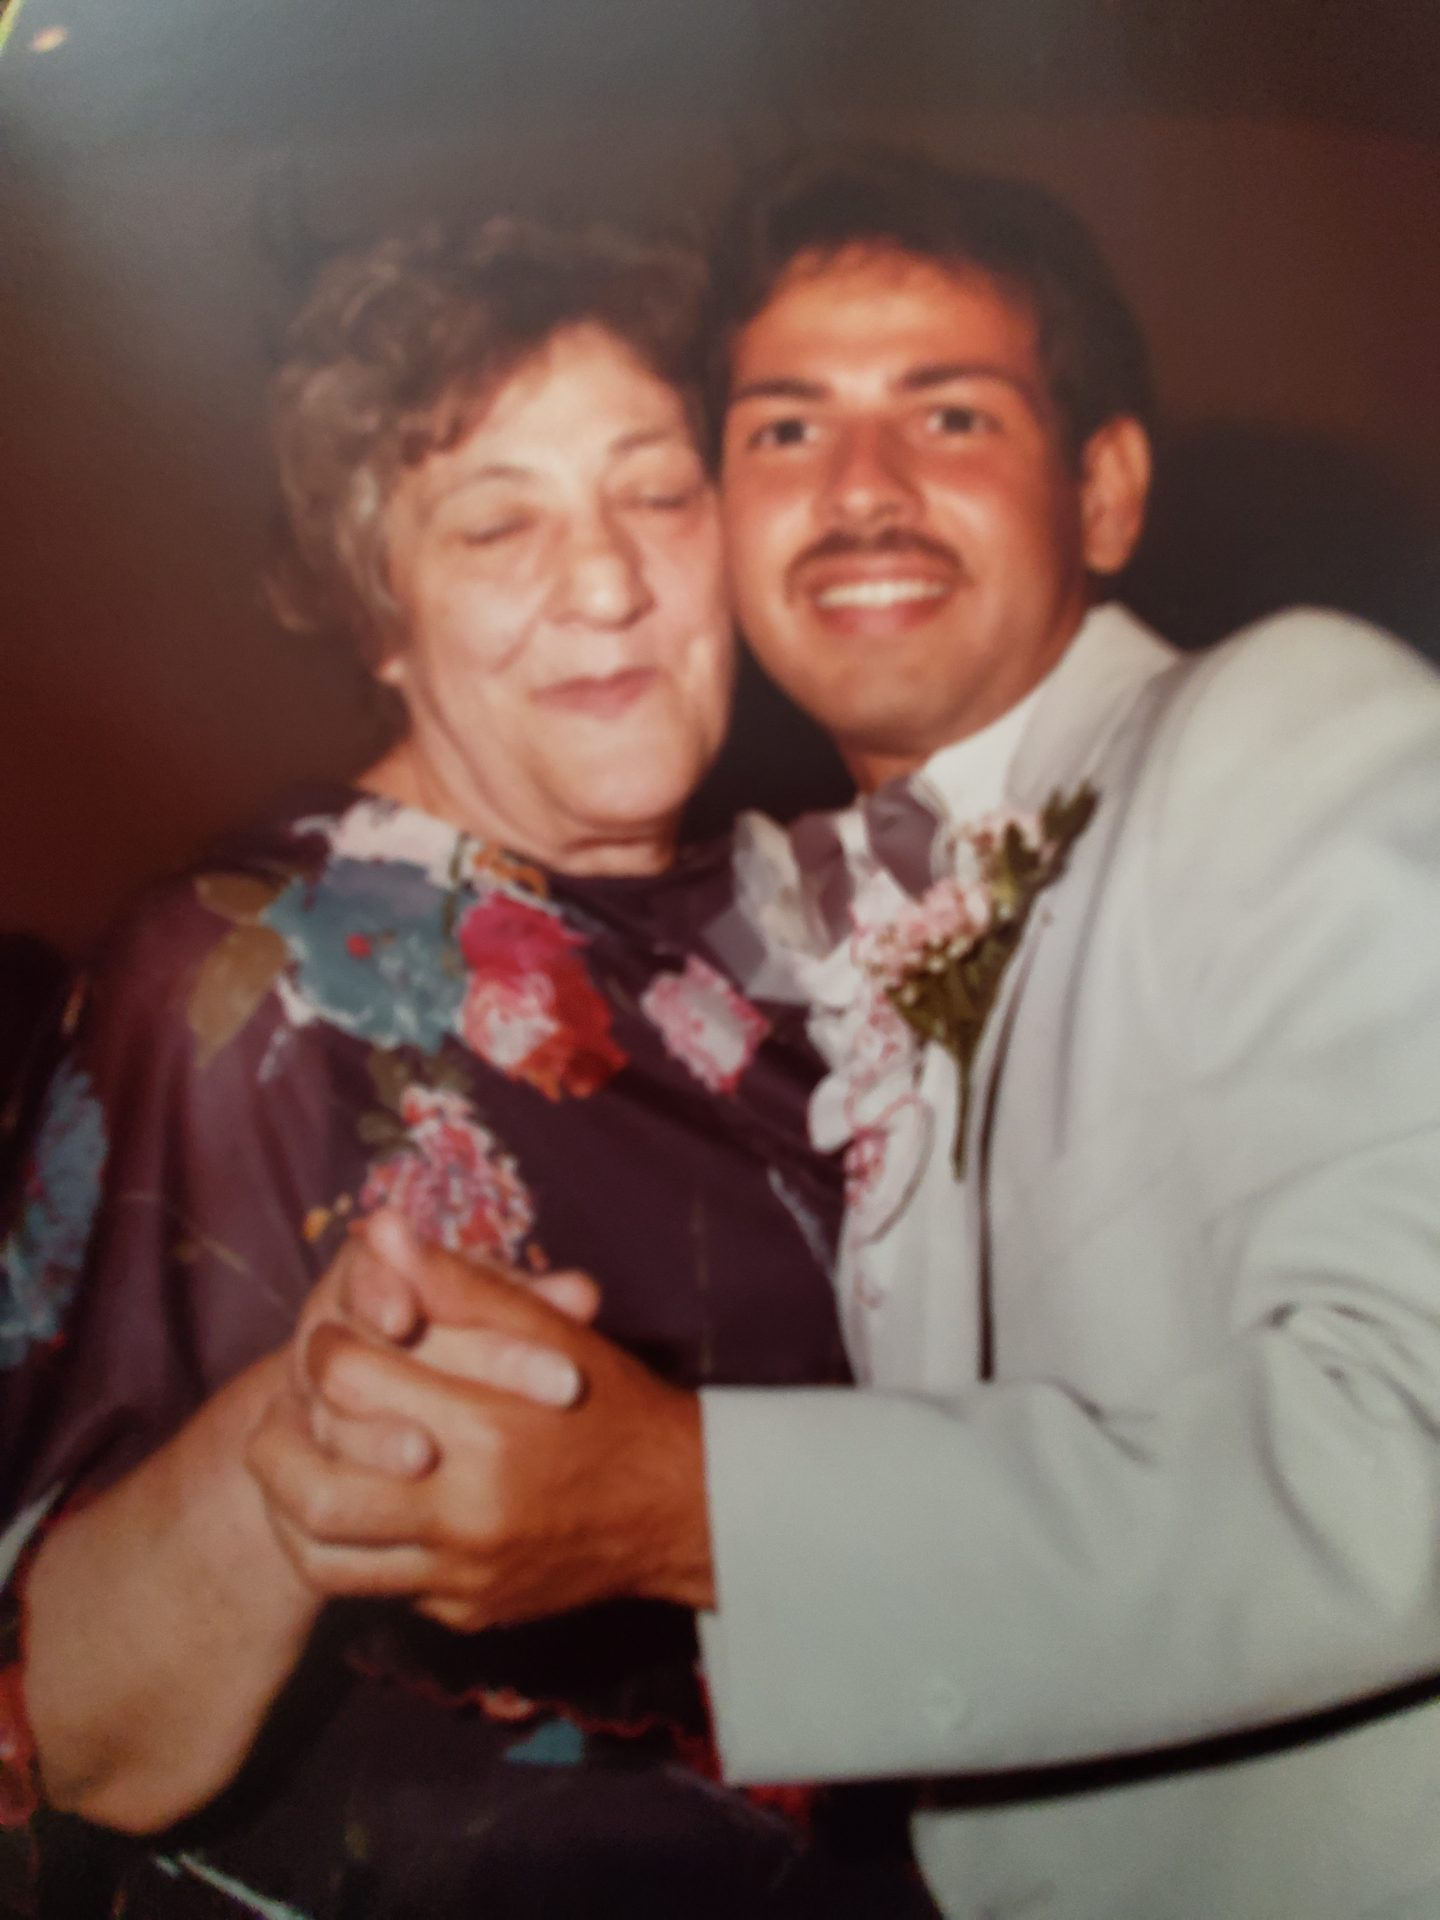 Love this picture of Ralph and Gram